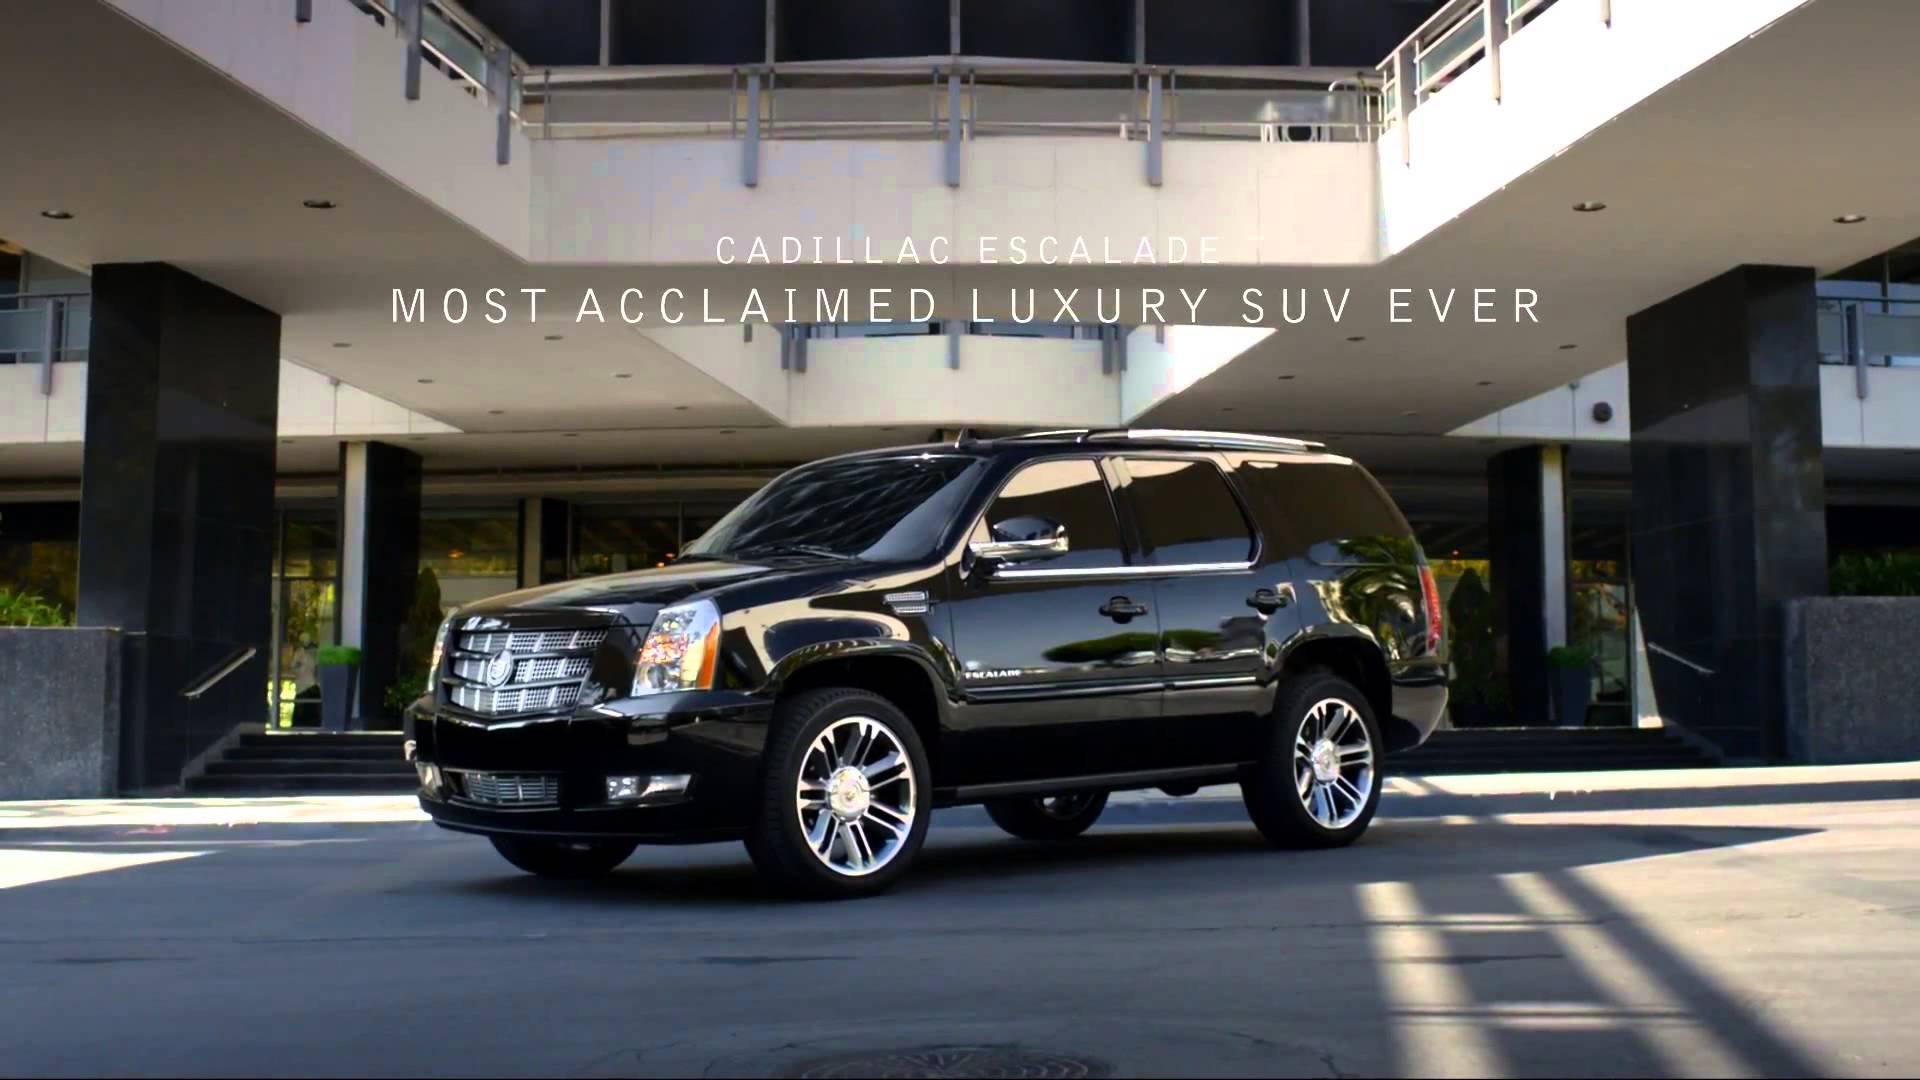 Cadillac 2014 Escalade, a giant SUV originally designed #10